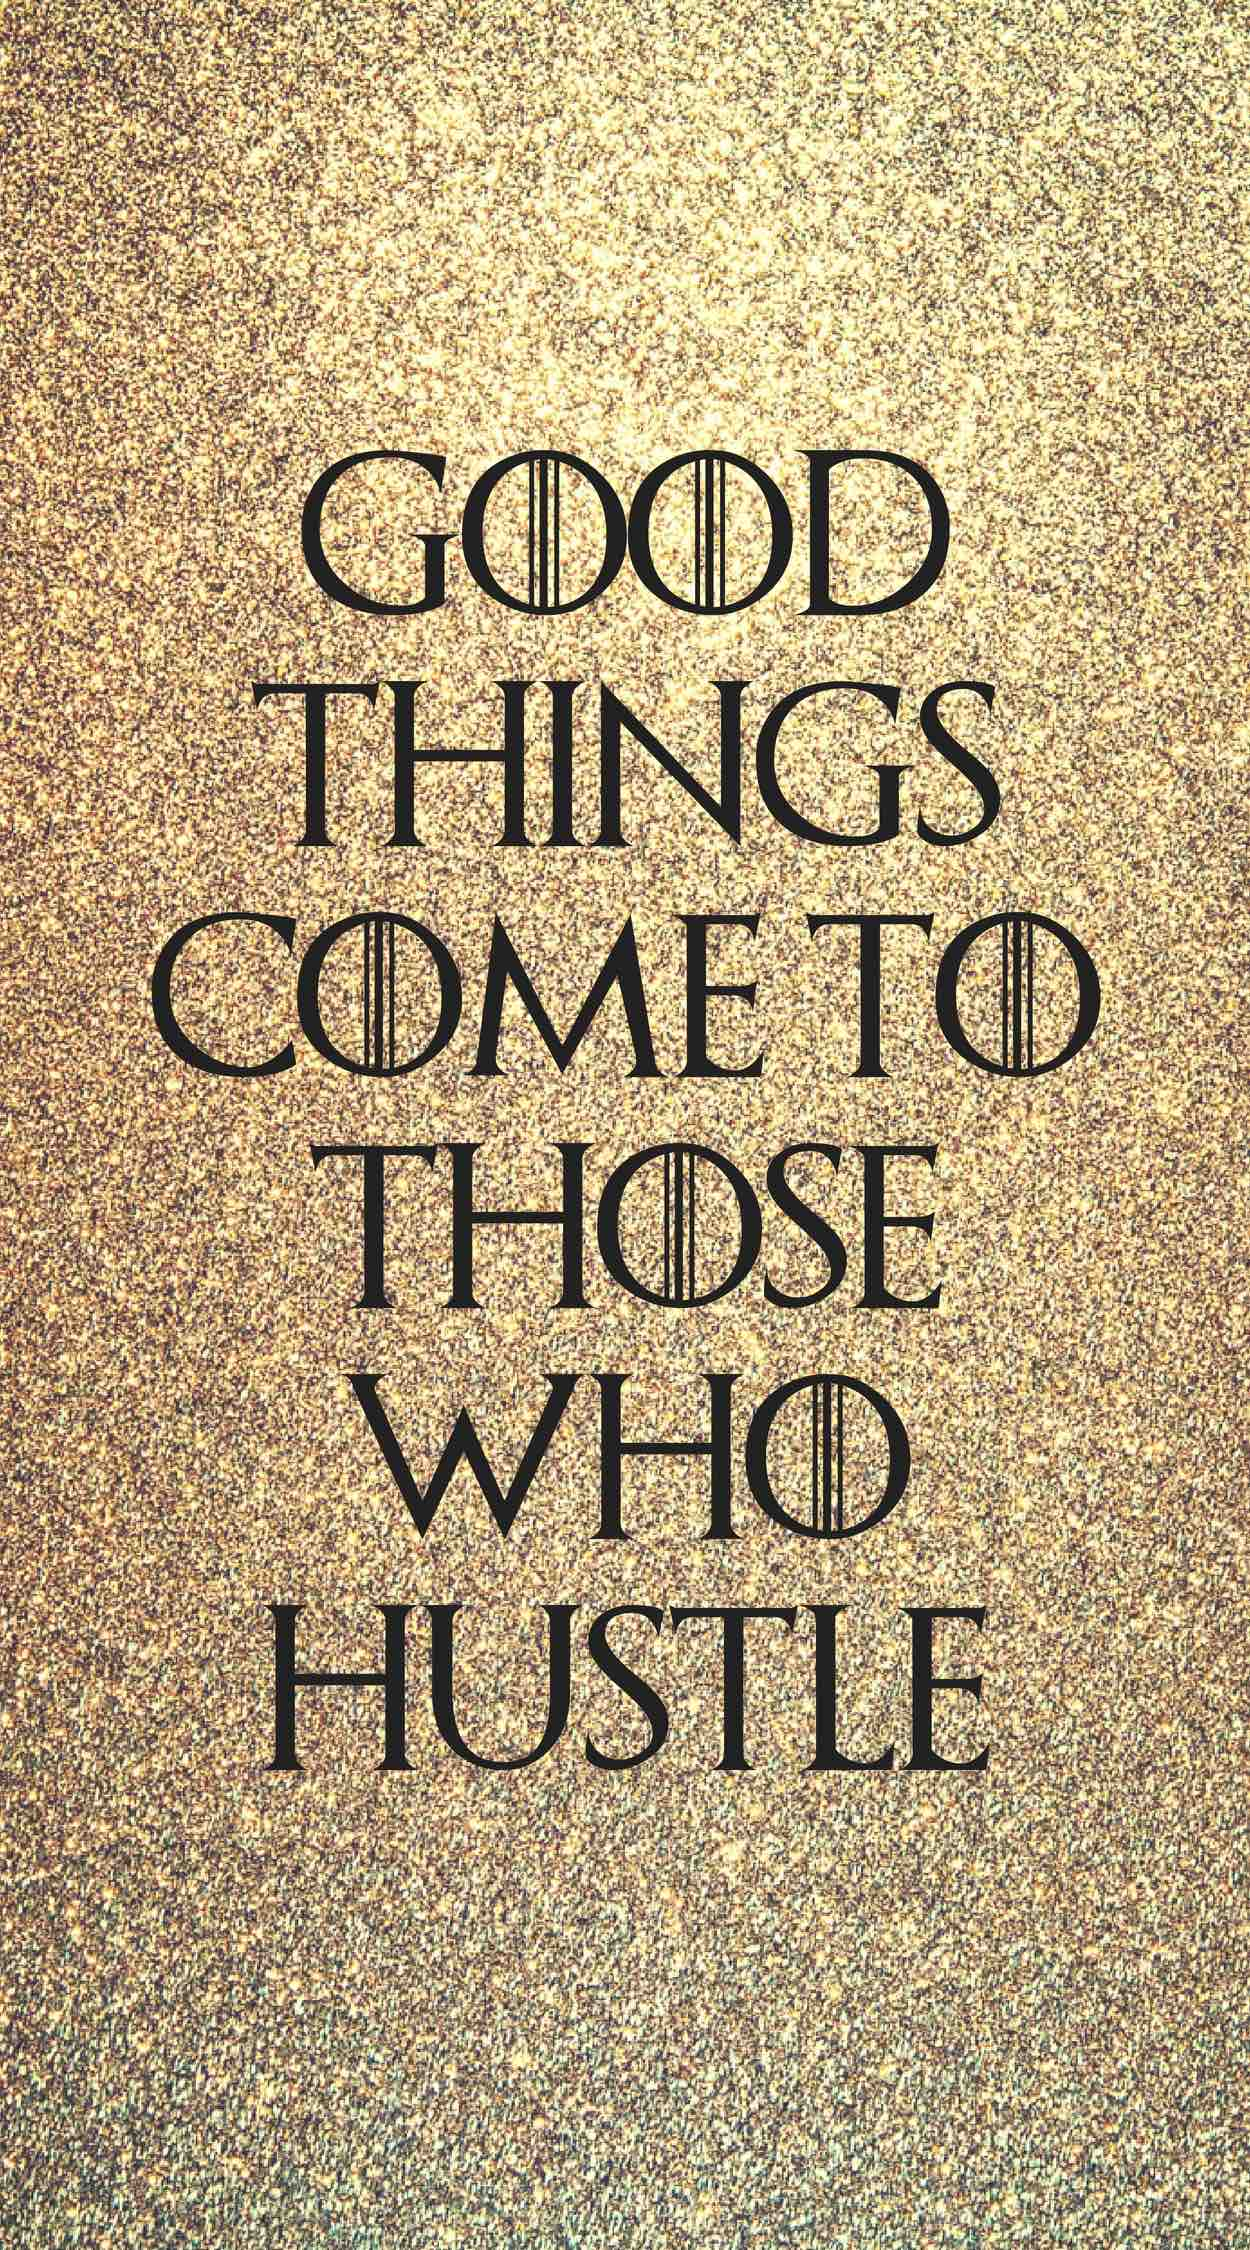 lady boss quotes | hustle quotes